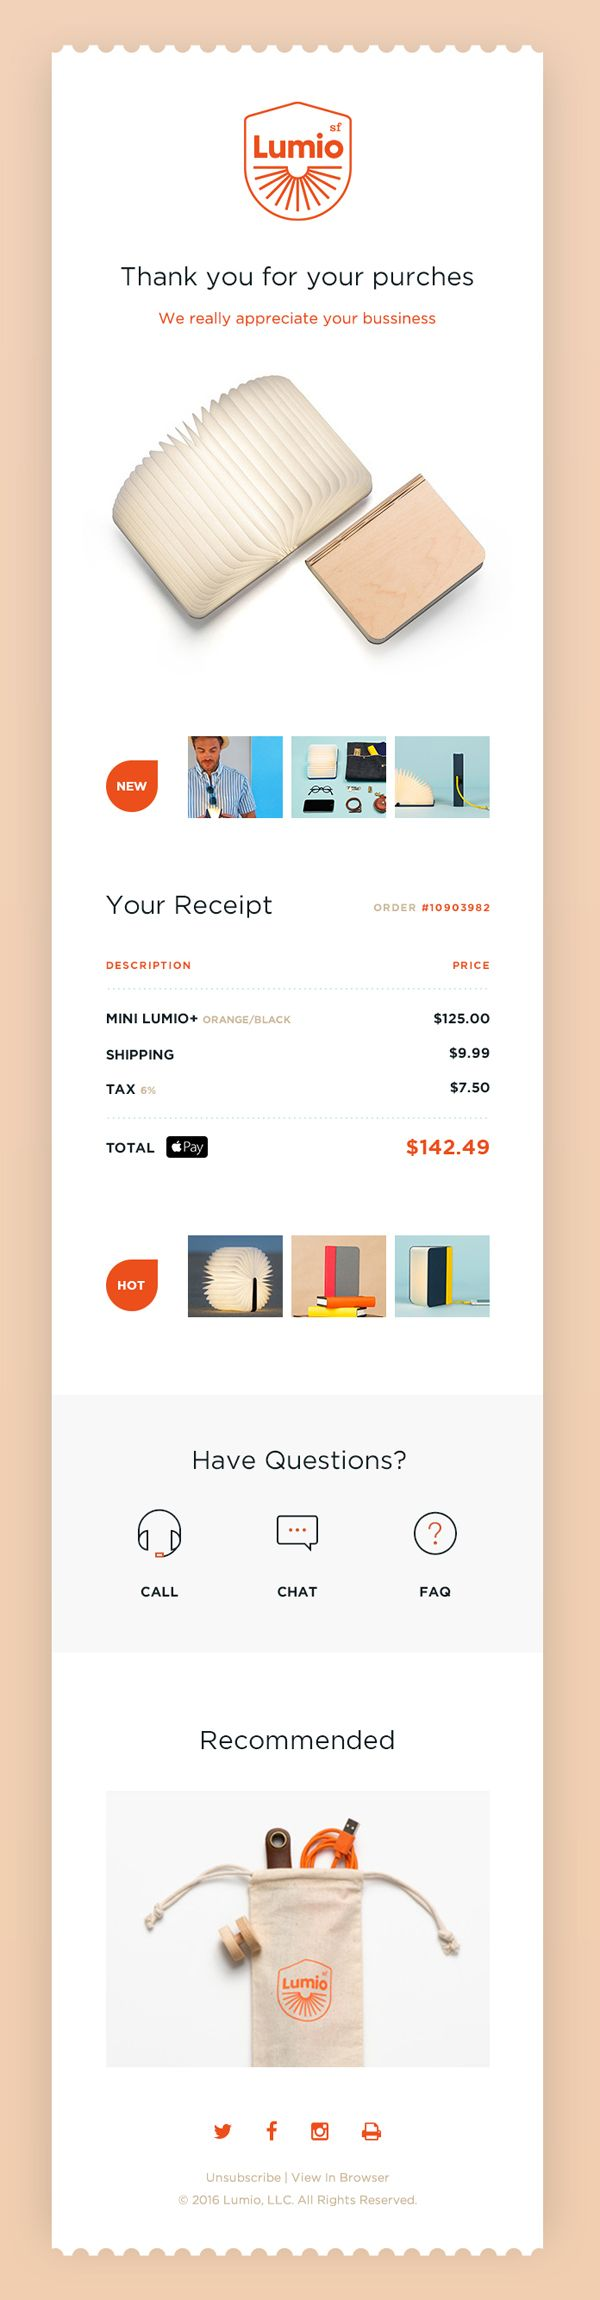 15 must see receipt template pins invoice template invoice email receipt psd ui template